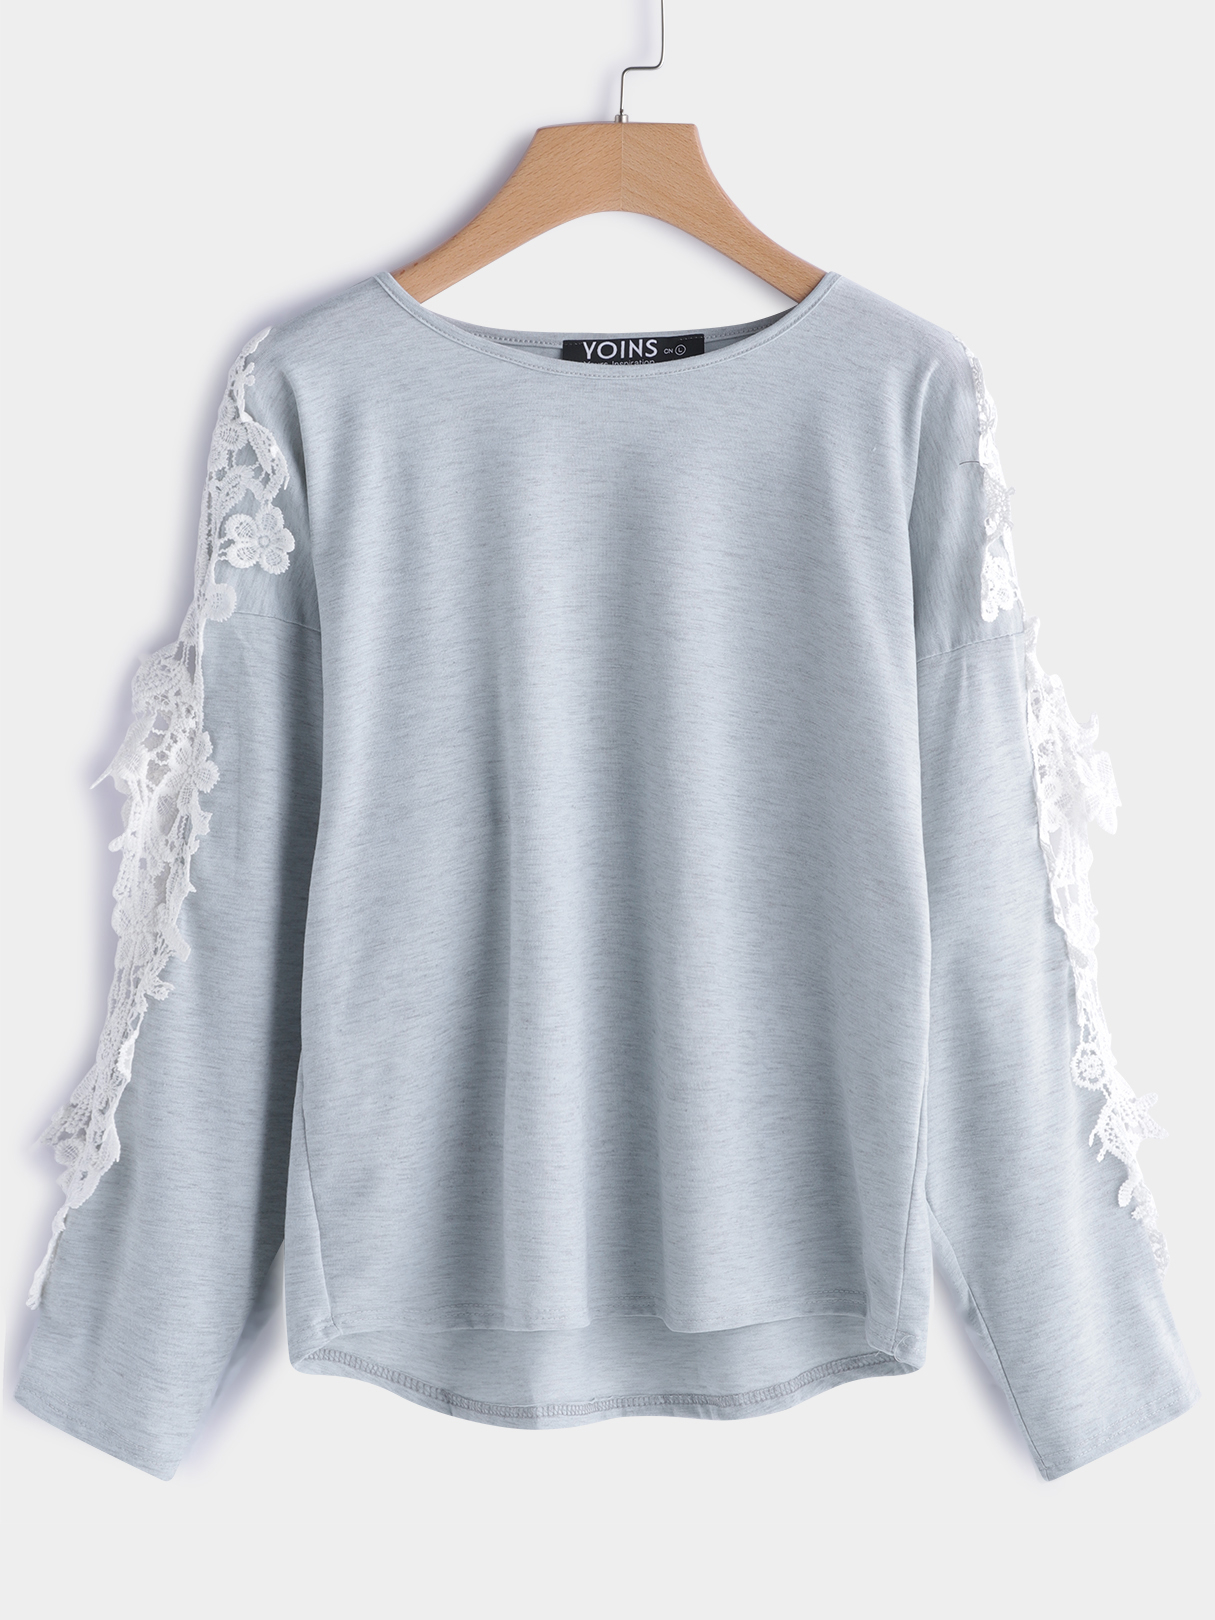 Grey Cut Out Plain Round Neck Lace Details Long Sleeves T-shirt grey lace up design plain round neck long sleeves sweater